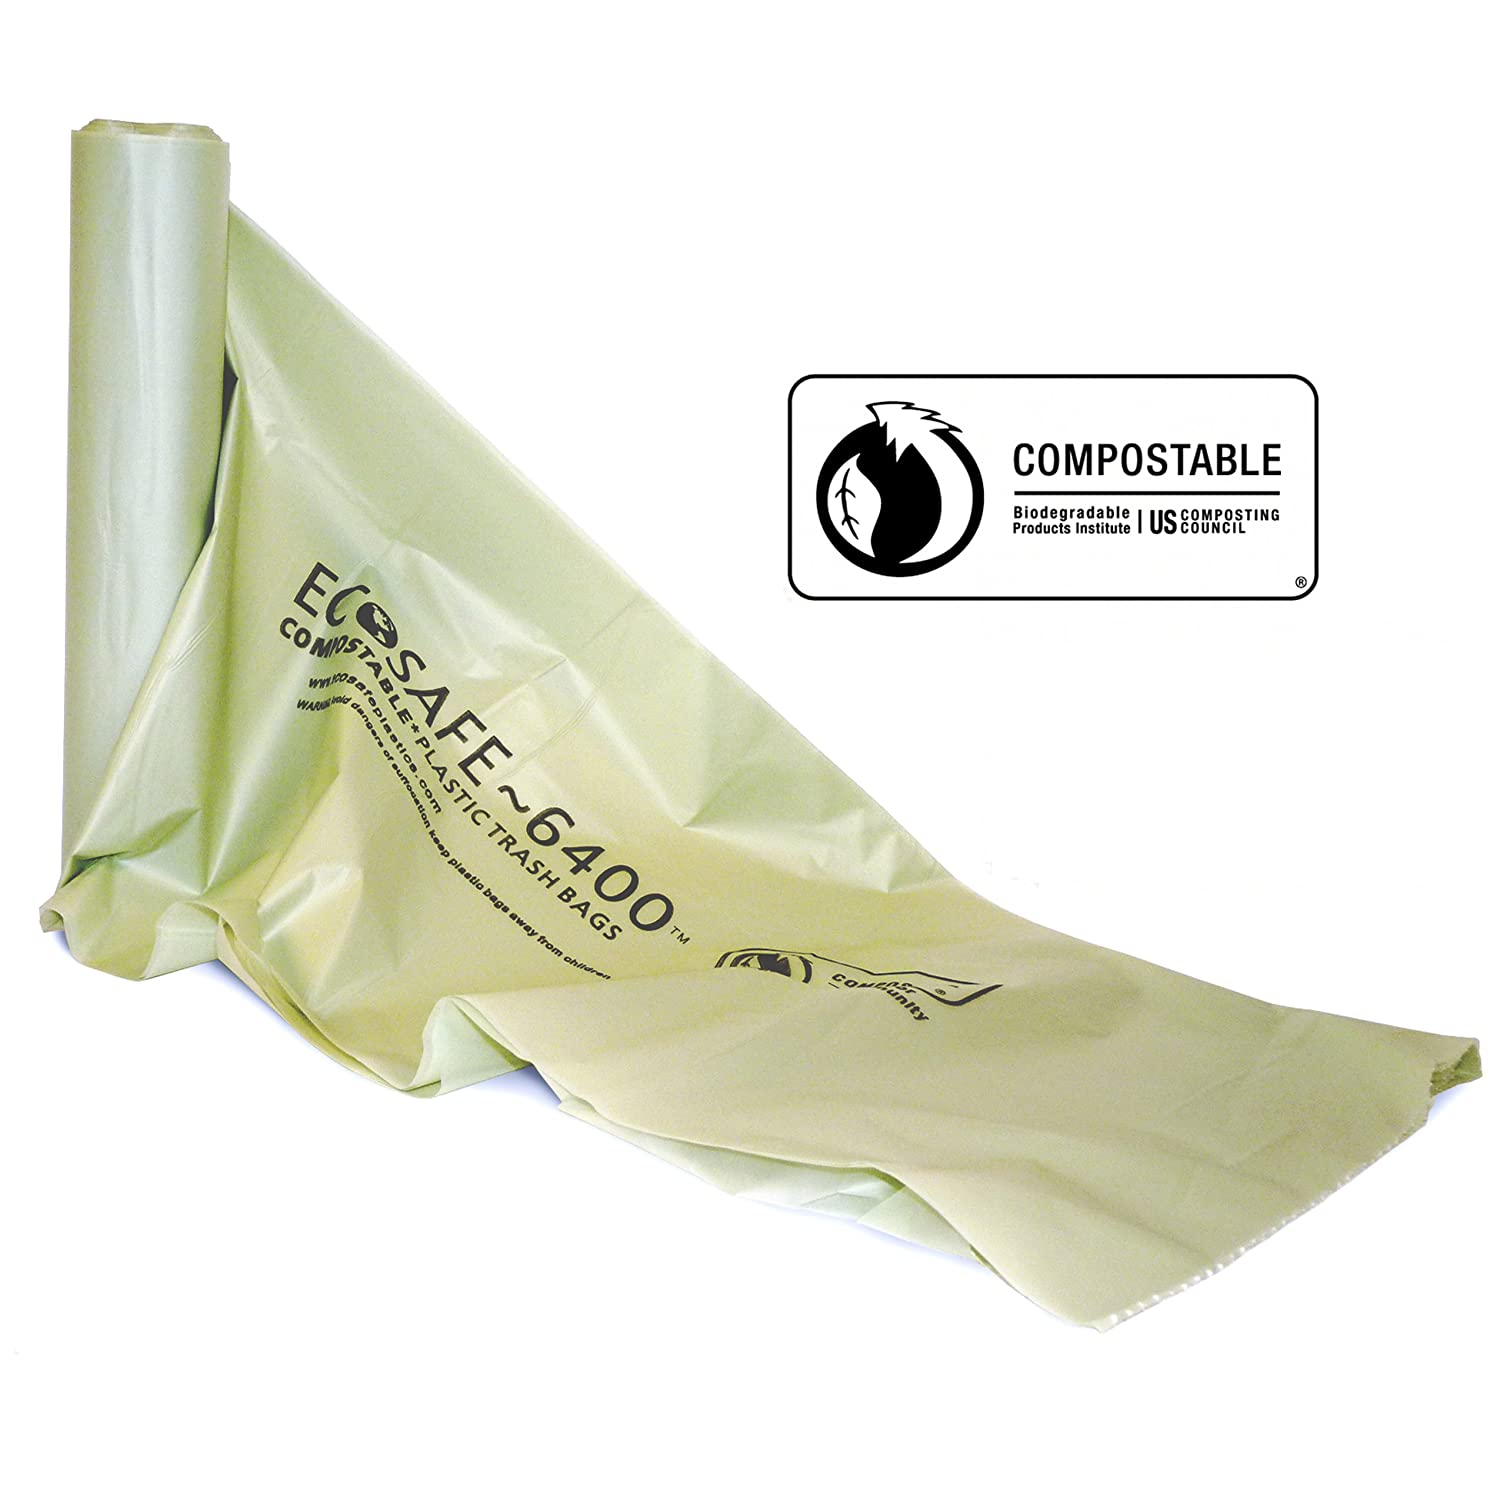 EcoSafe RP3343-10 39 Gallon Lawn//Leaf biodegradable Bags Box of 6